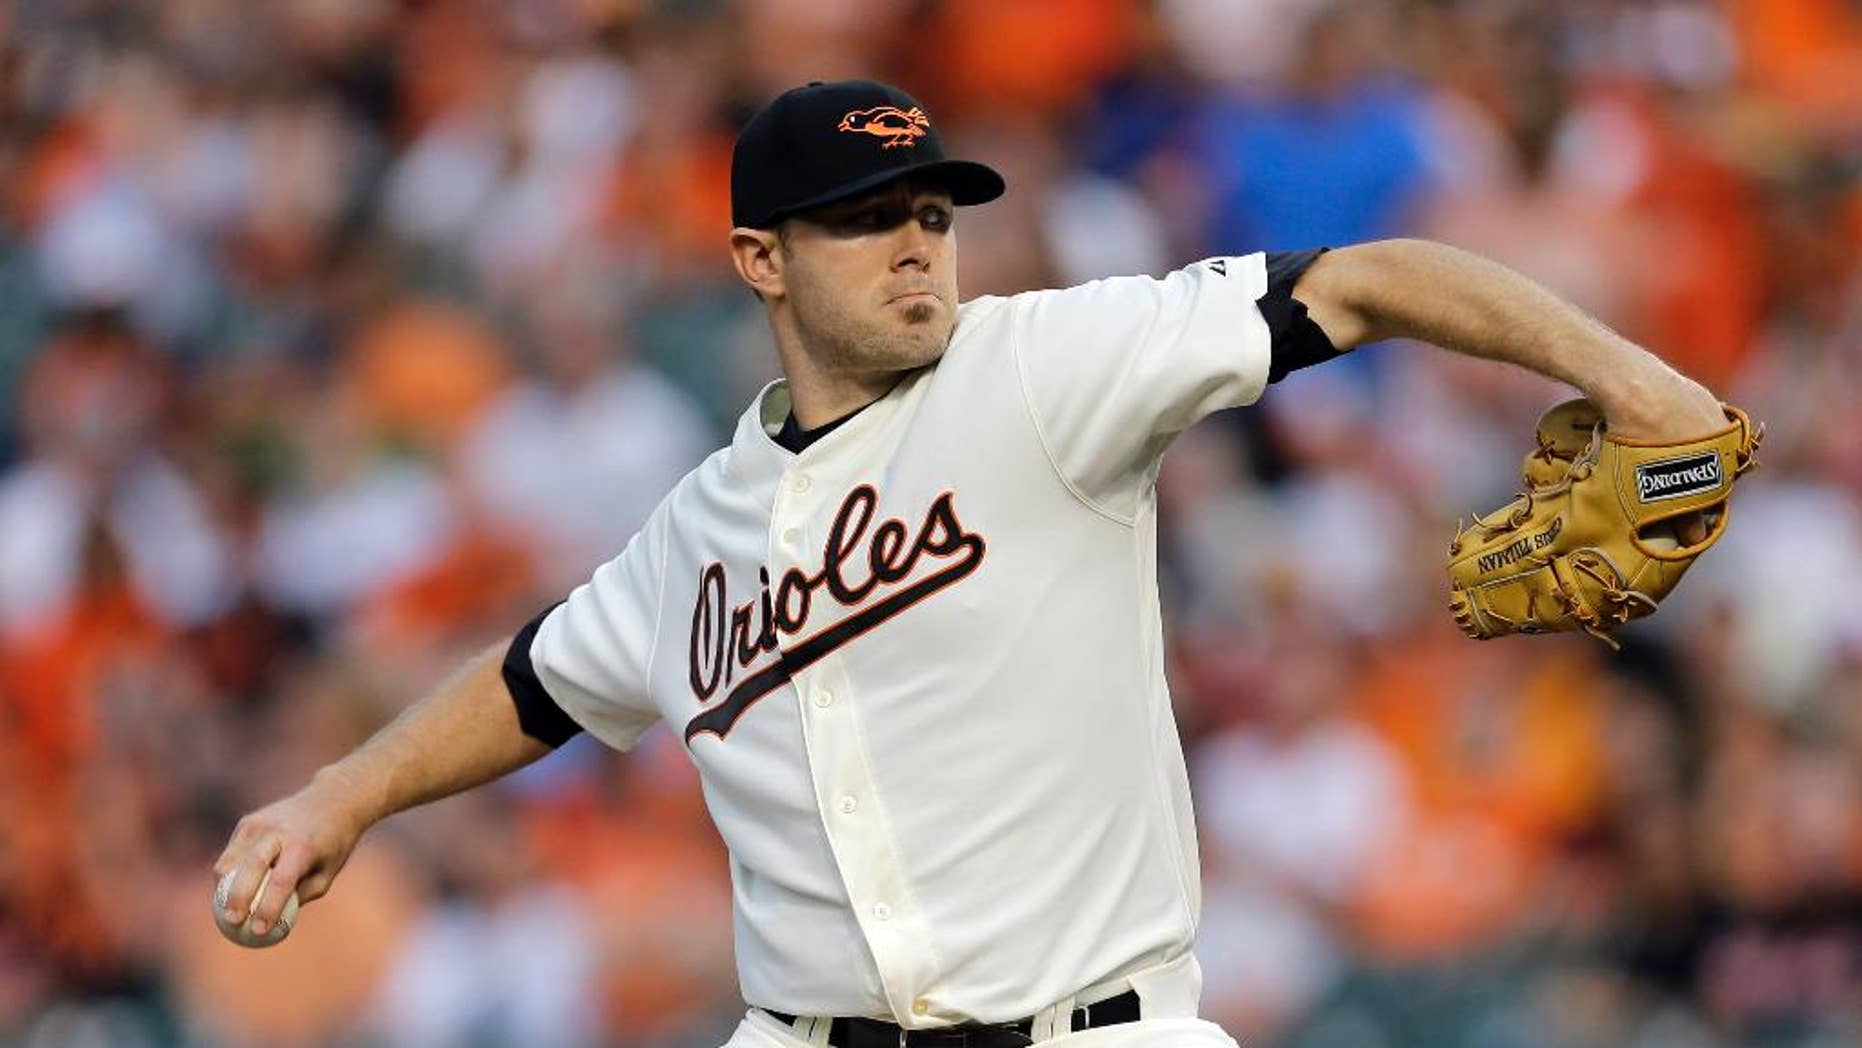 Baltimore Orioles starting pitcher Chris Tillman throws to the St. Louis Cardinals in the first inning of an interleague baseball game, Friday, Aug. 8, 2014, in Baltimore. (AP Photo/Patrick Semansky)